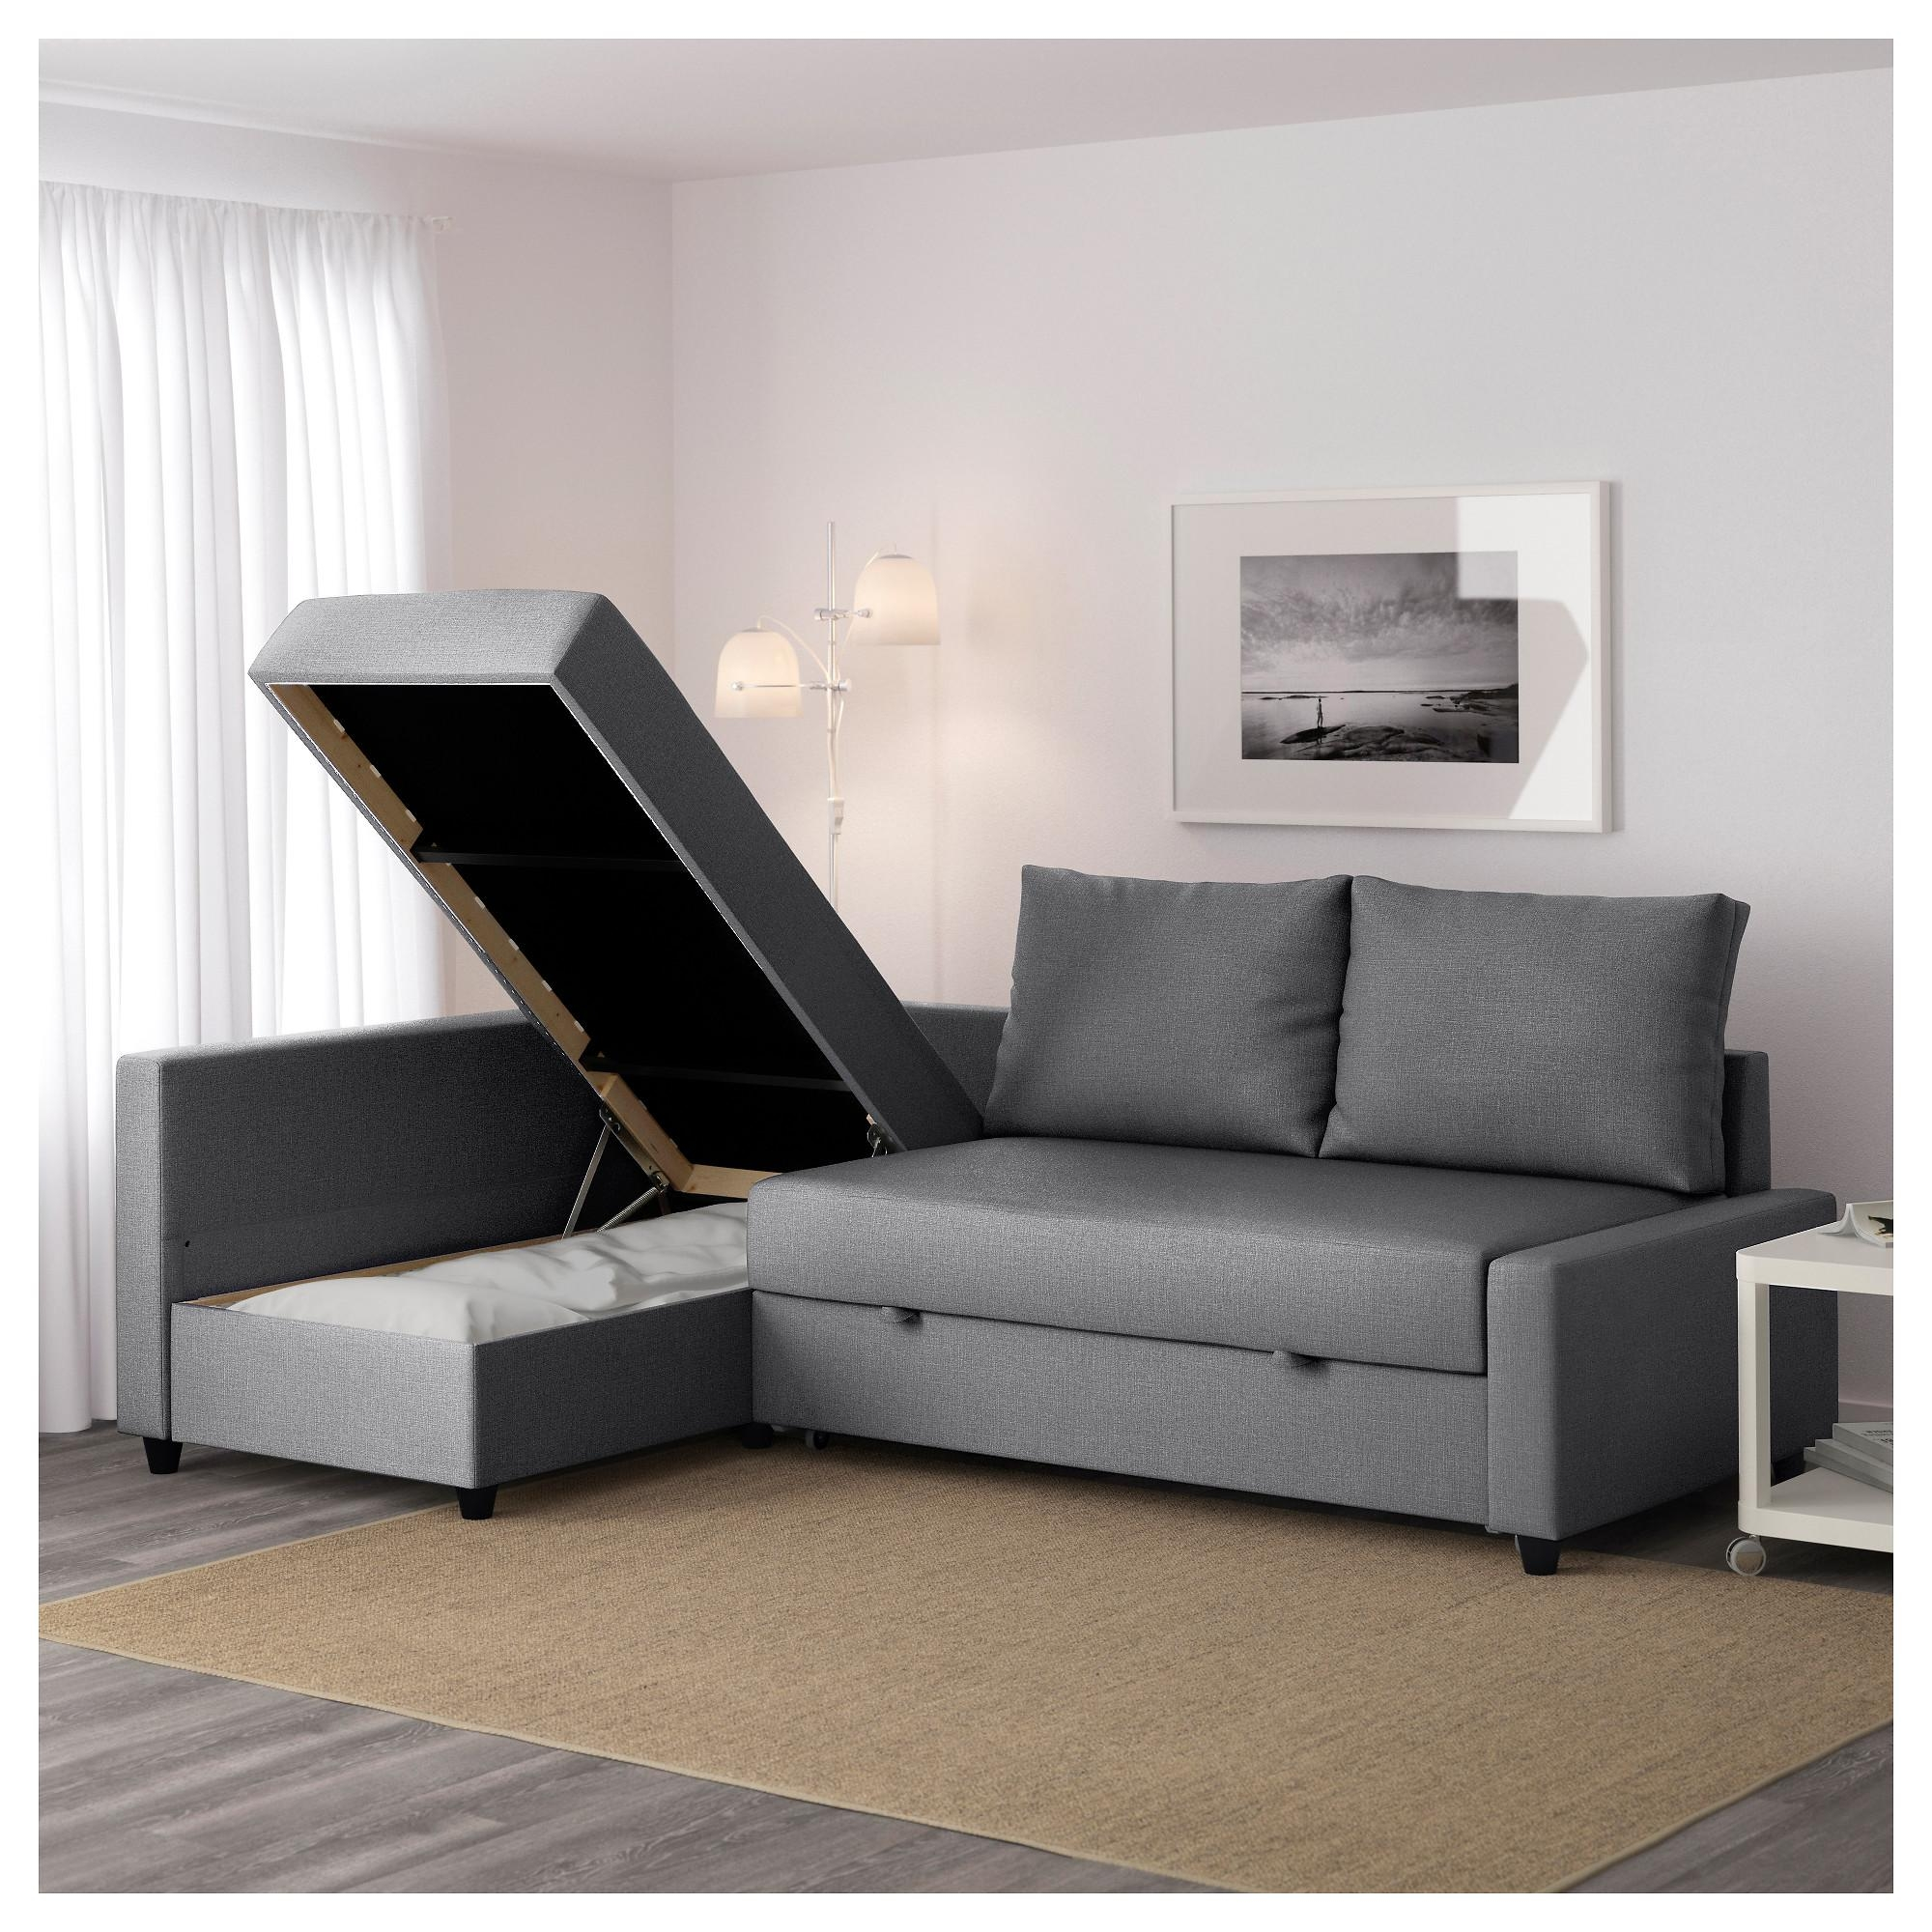 Friheten Corner Sofa Bed With Storage Skiftebo Dark Grey – Ikea Intended For Ikea Corner Sofa Bed With Storage (Image 7 of 20)